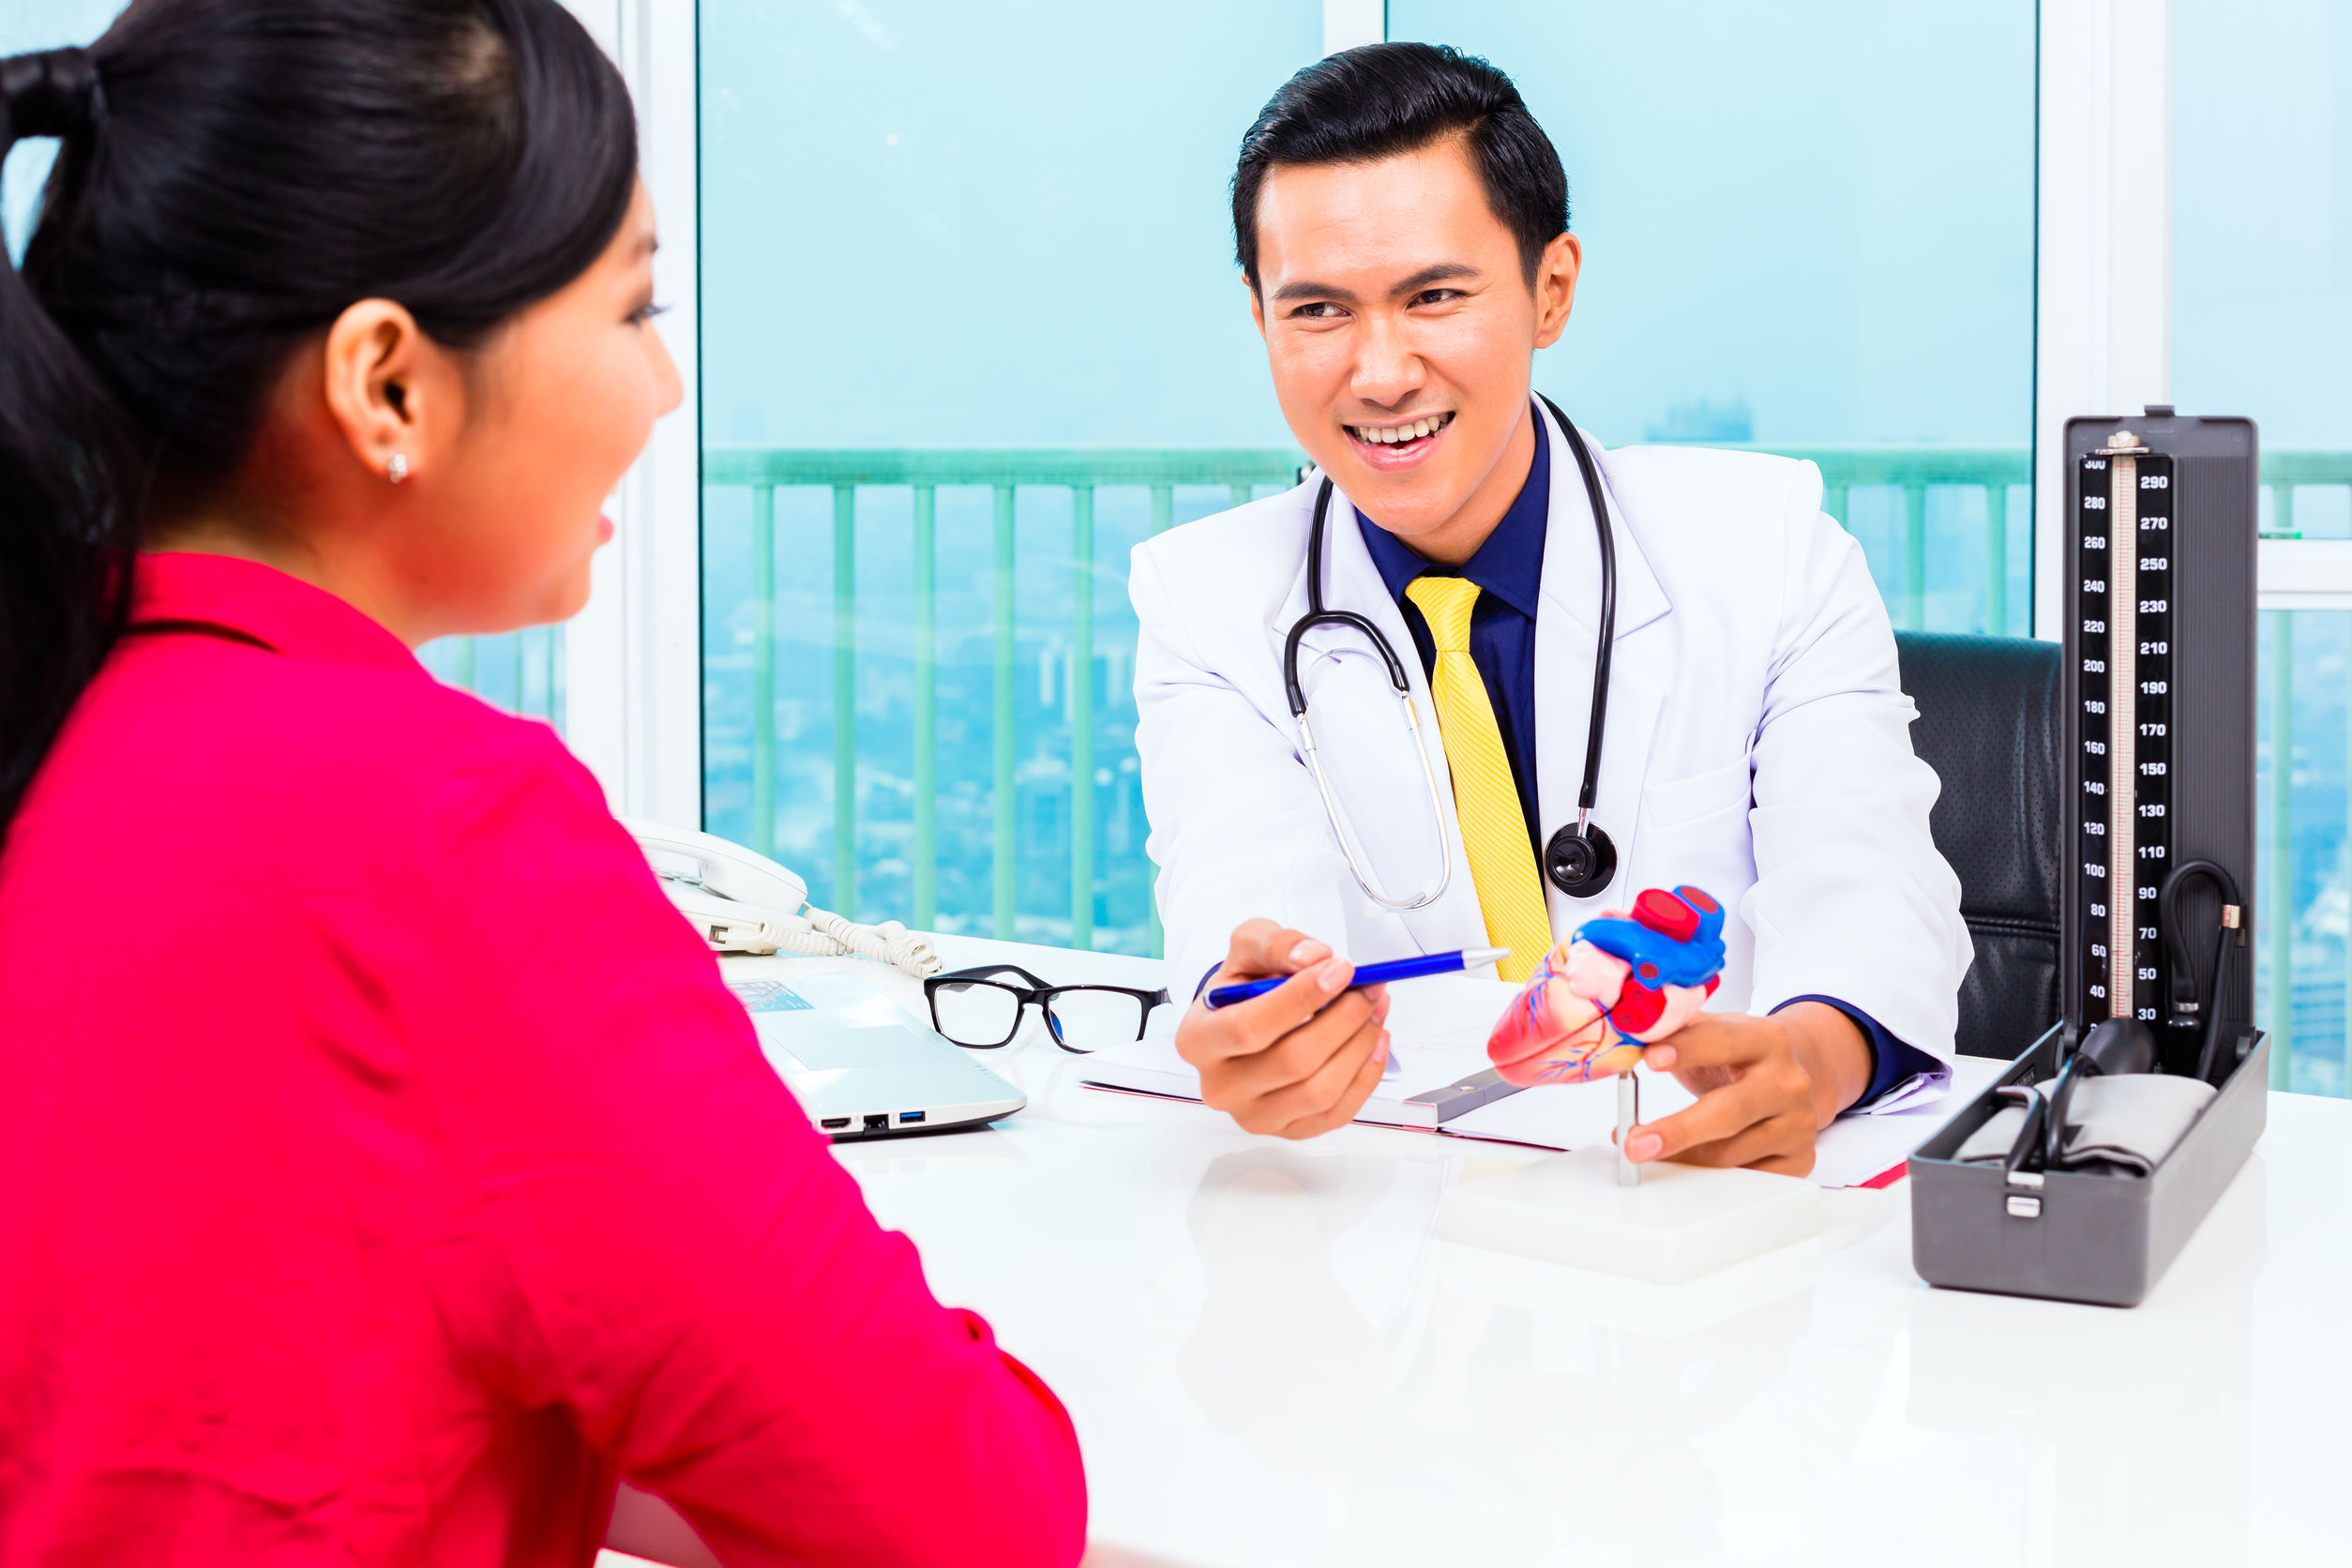 physician job interview tips